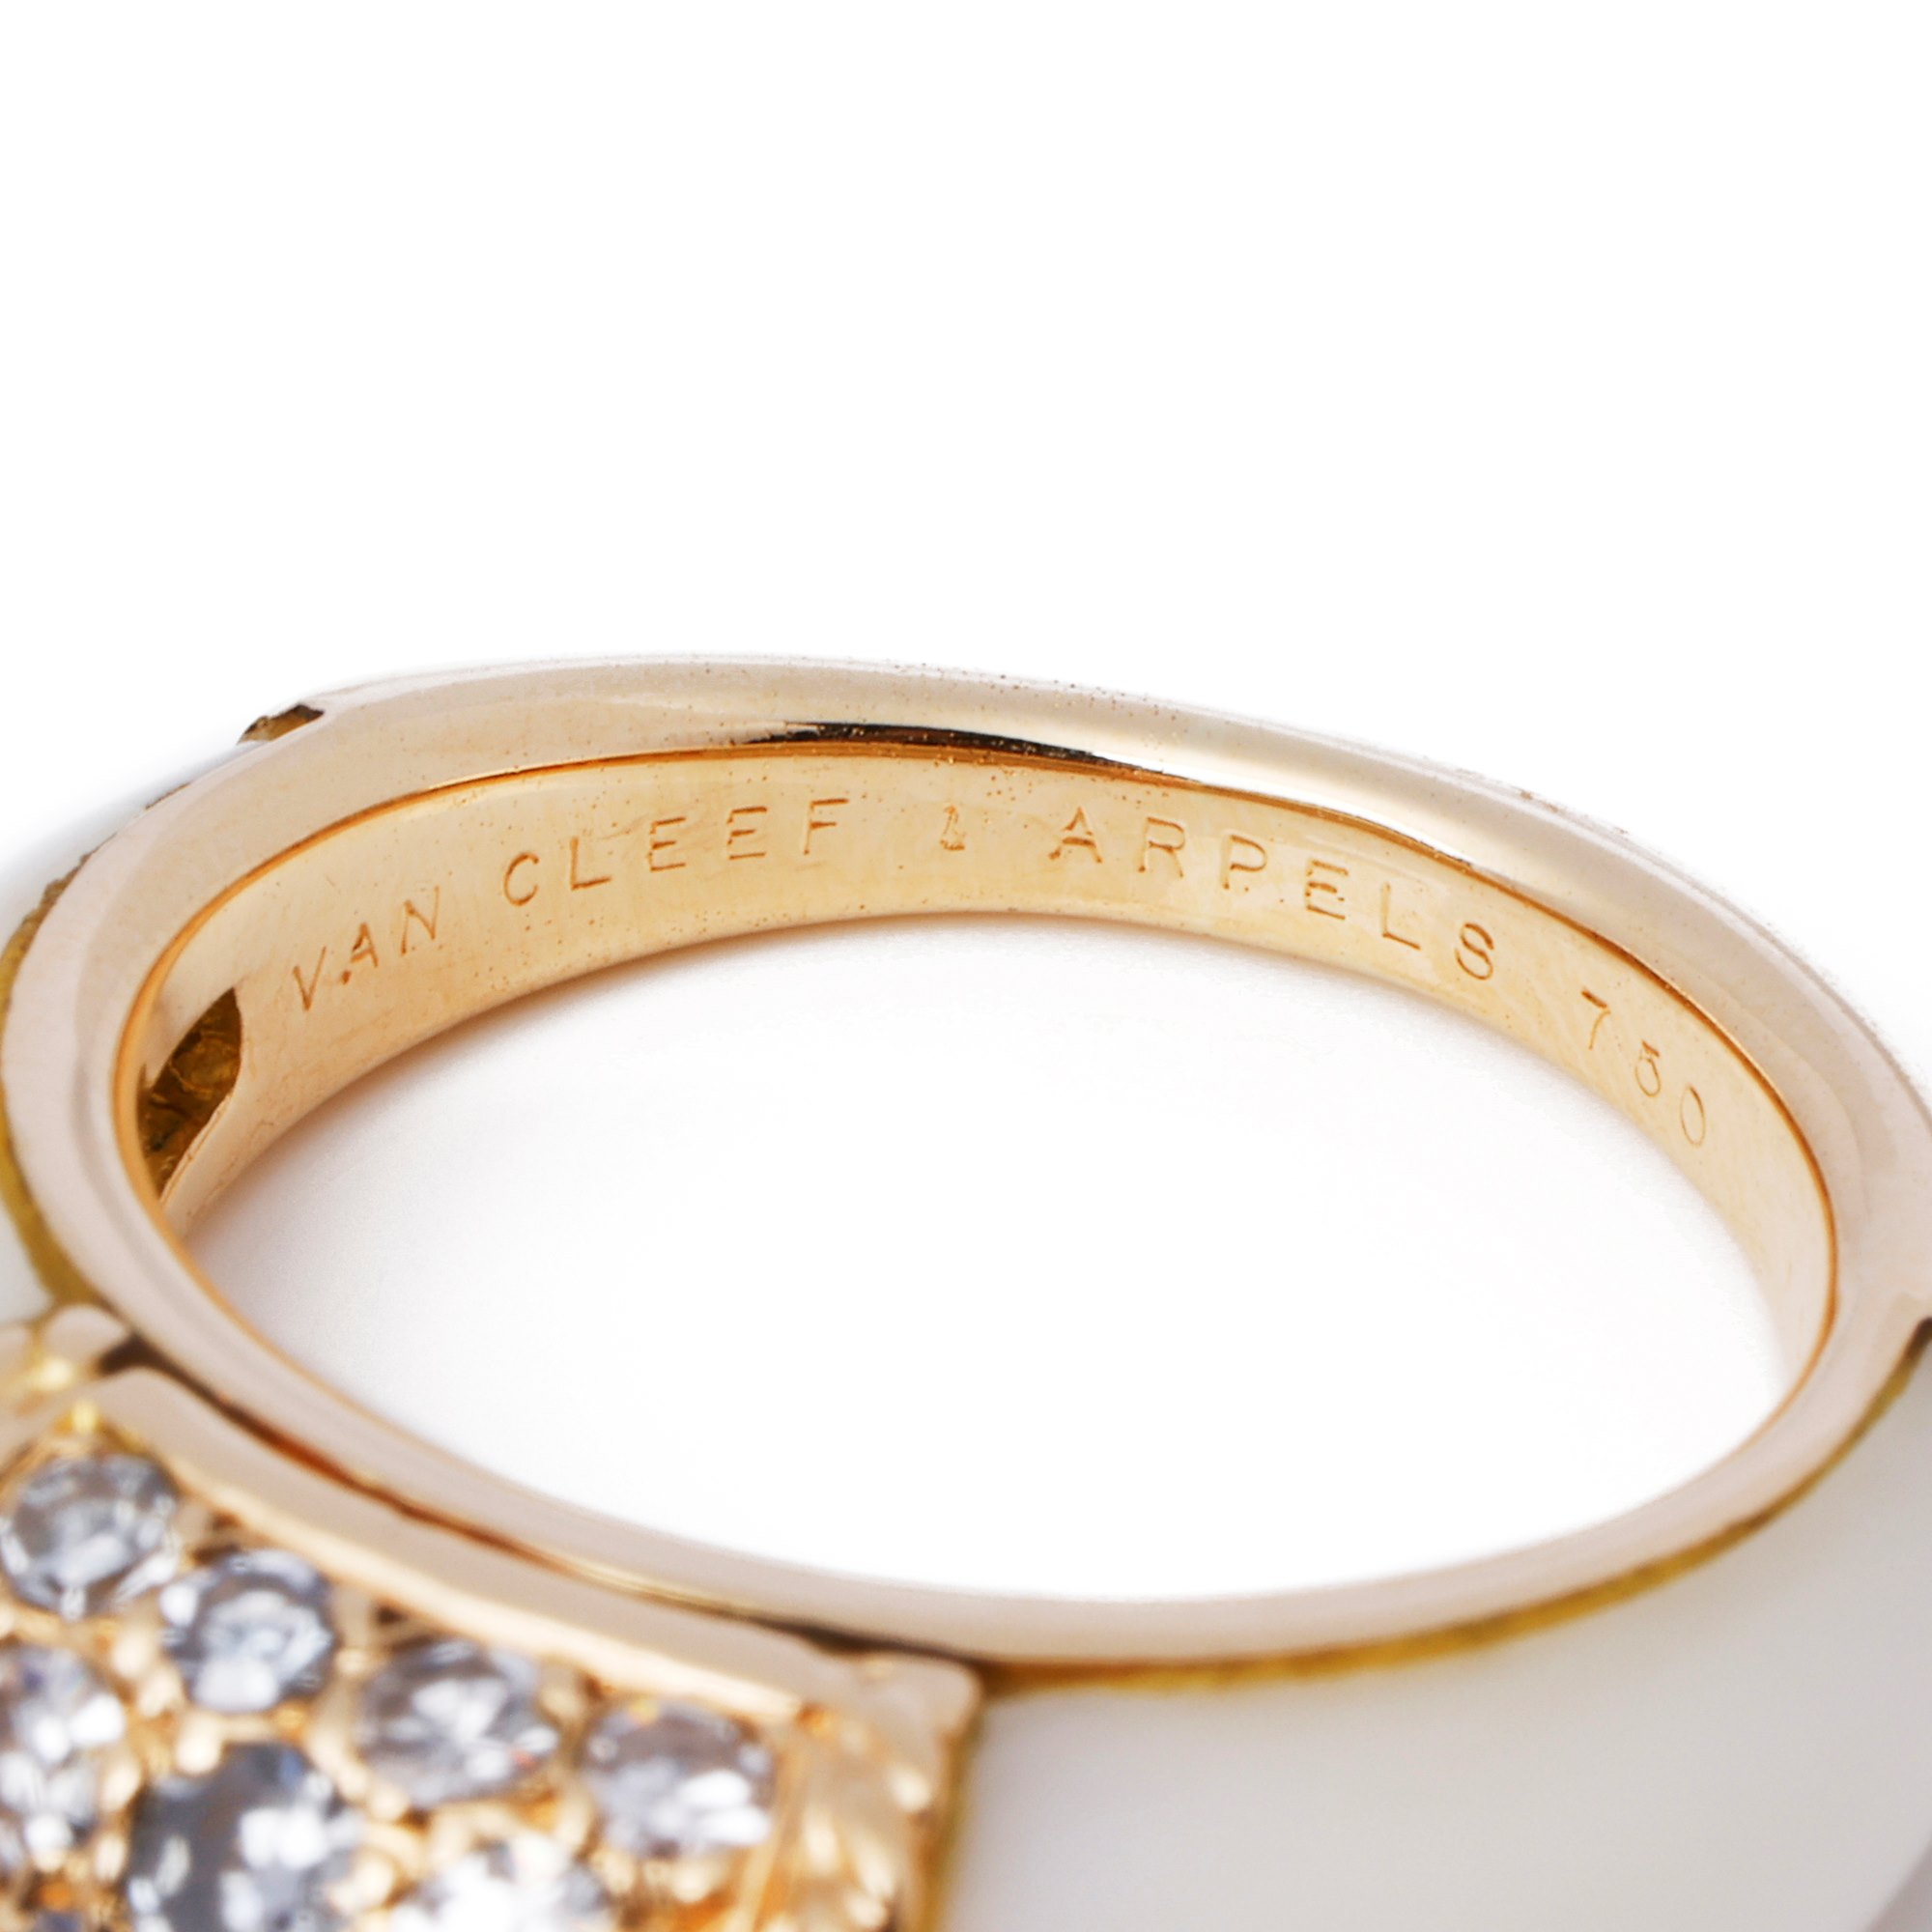 Van Cleef & Arpels 18ct Gold White Coral and Diamond Phillipine Ring